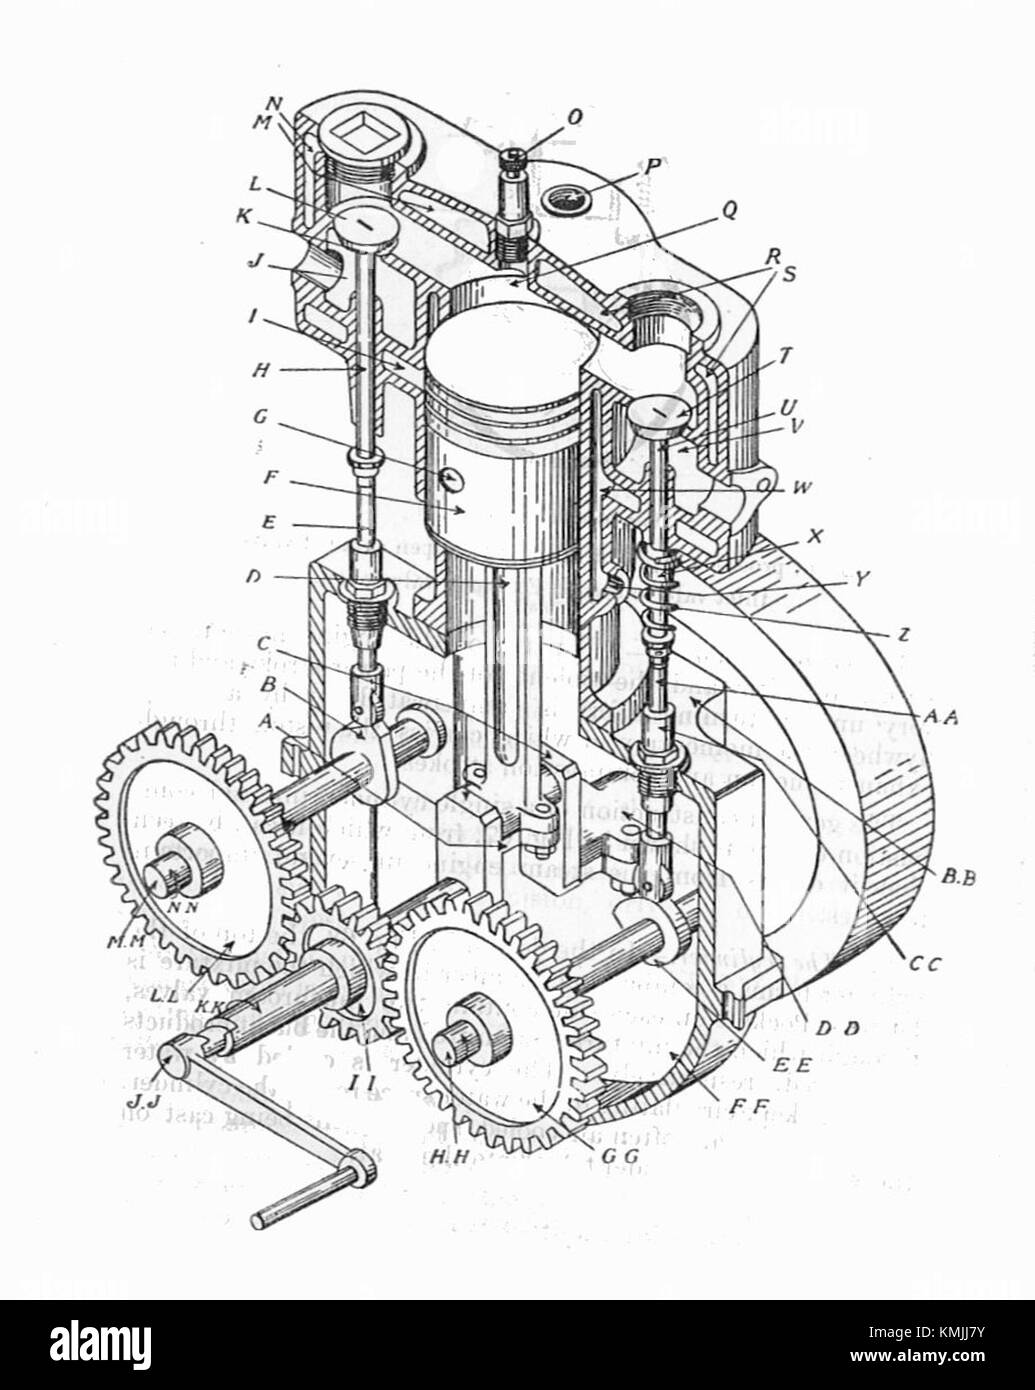 hight resolution of single cylinder motorcycle engine diagram